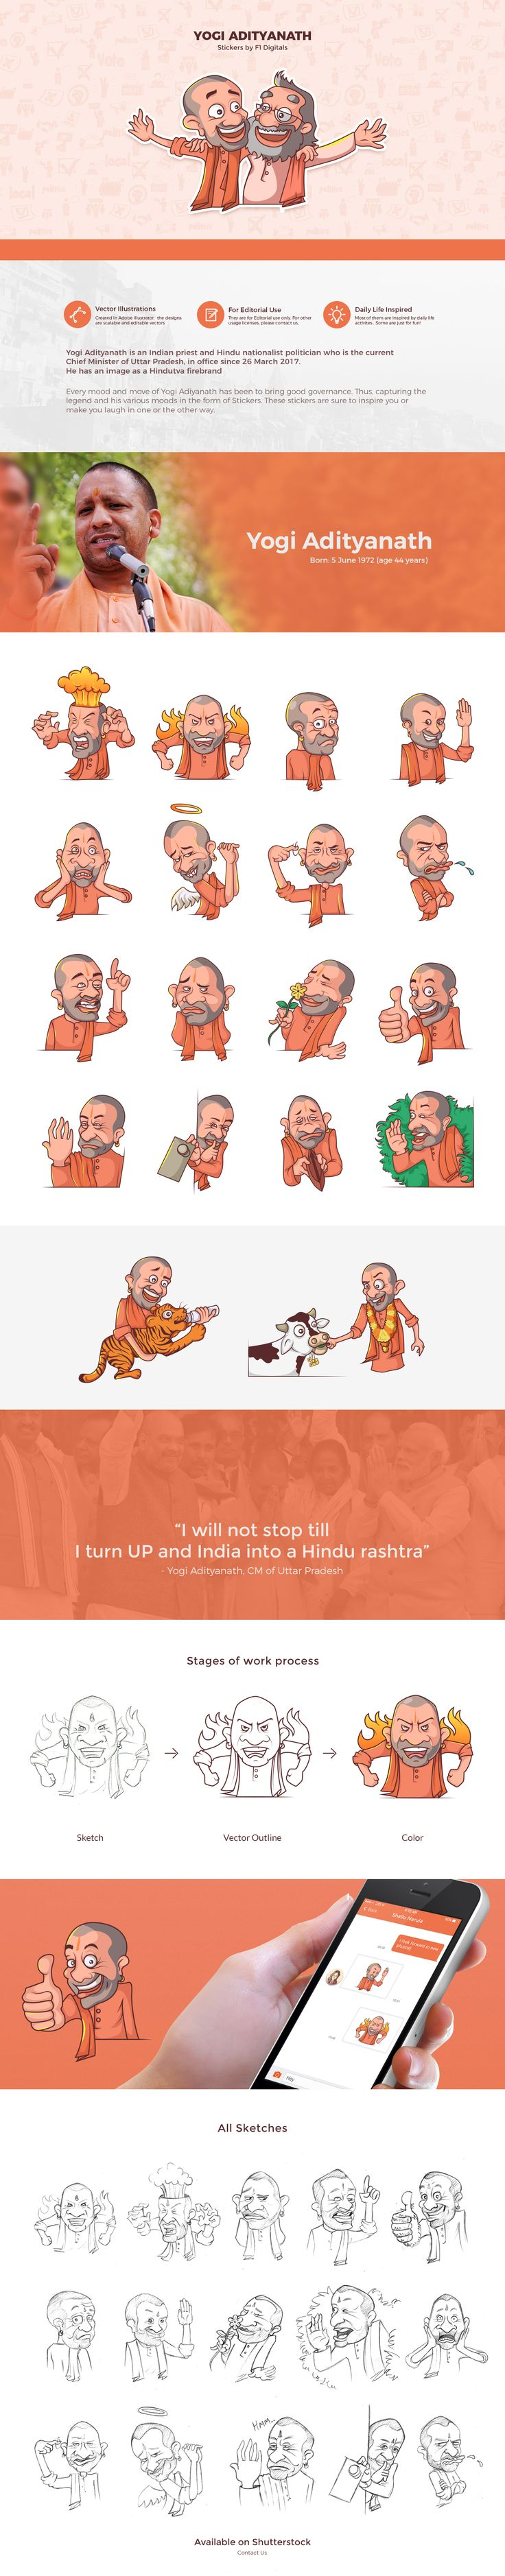 Yogi Adityanath Stickers Design  Every mood and move of Yogi Adiyanath has been to bring good governance. Thus, capturing the legend and his various moods in the form of Stickers. These stickers are sure to inspire you or make you laugh in one or the other way.